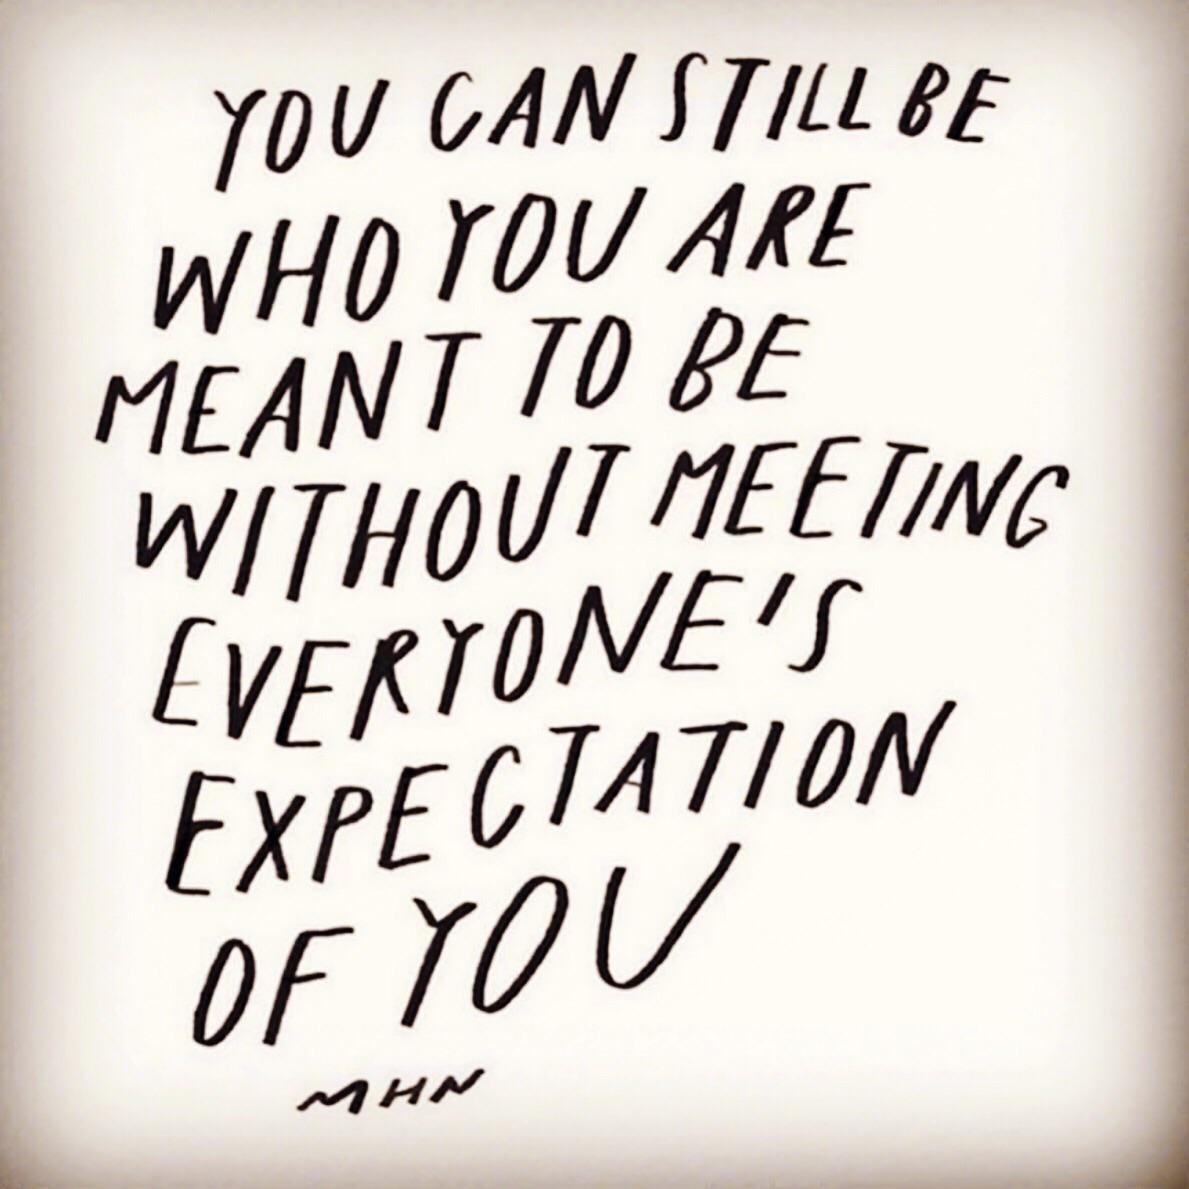 [image] they don't define who you are or who you want to be